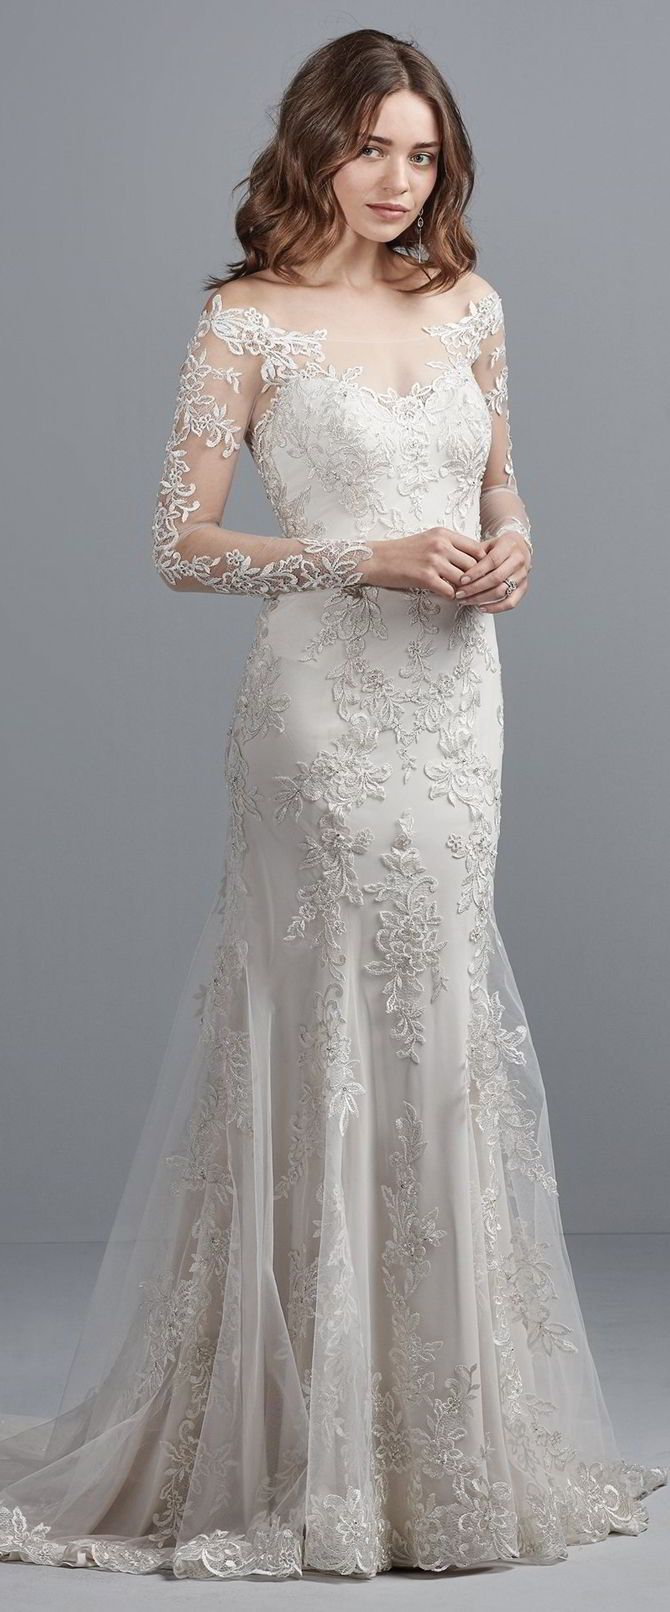 Beaded lace appliqués and Swarovski crystals cascade over a layer of Inessa Jersey in this off-the-shoulder wedding dress, featuring illusion long sleeves, illusion bateau over sweetheart neckline, and illusion scoop back in a sheath silhouette. Finished with crystal buttons over zipper closure.